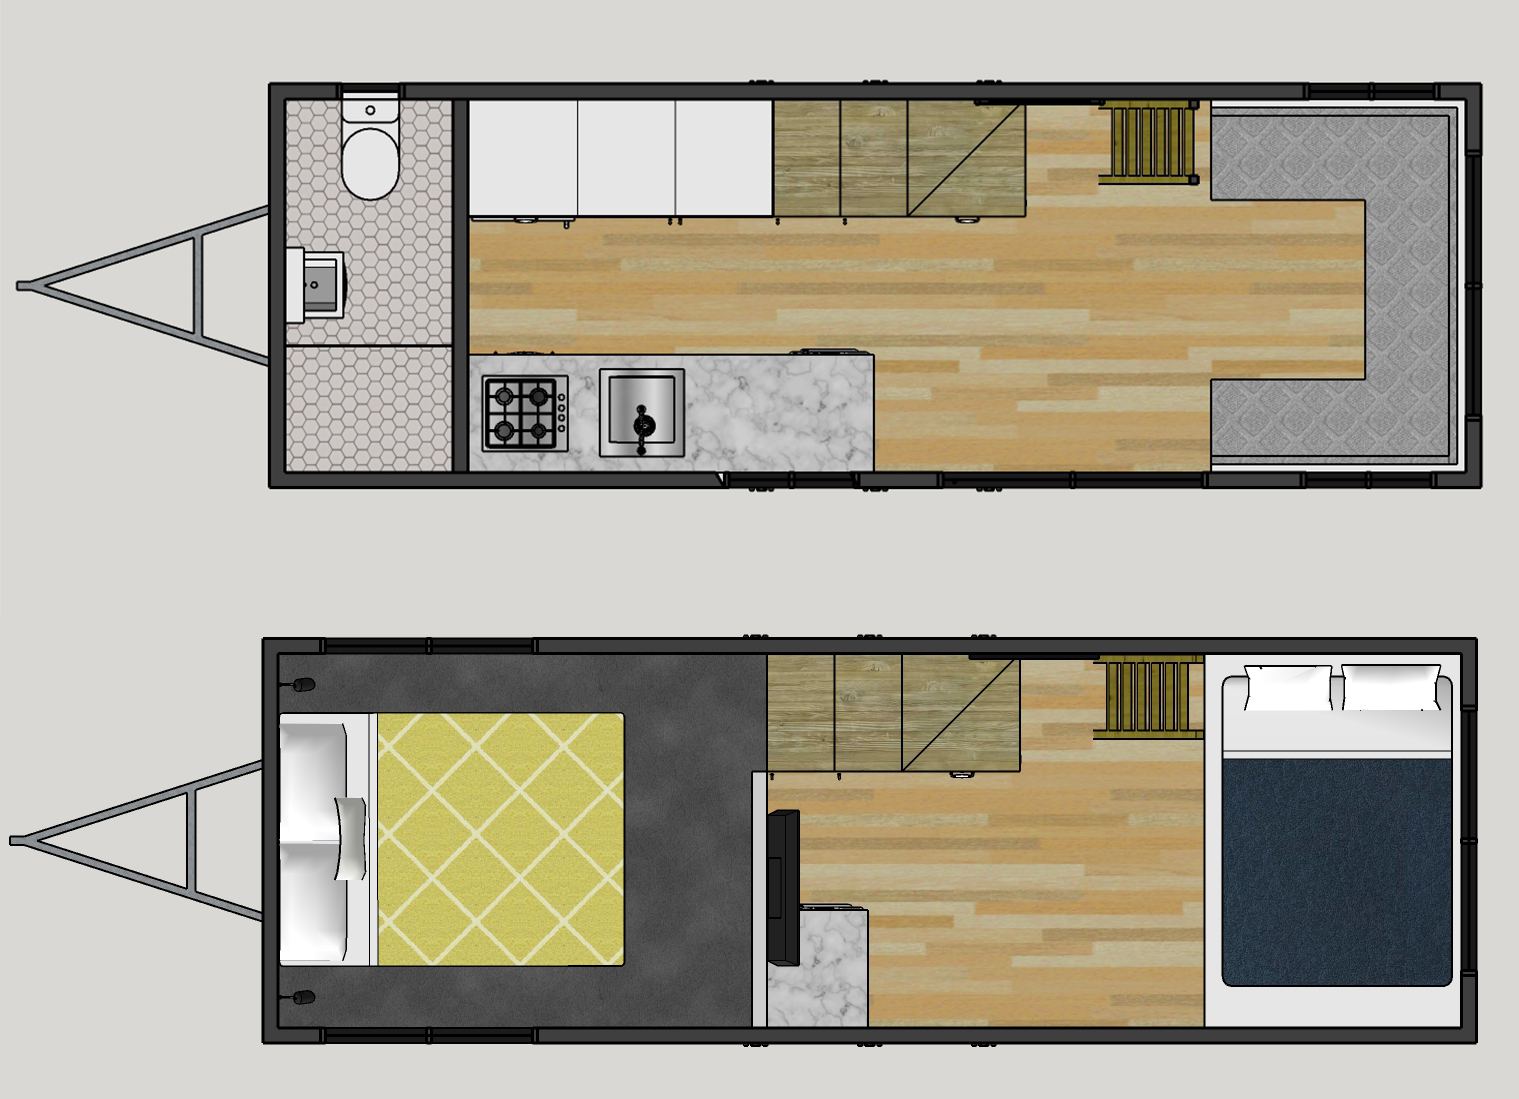 Tiny House NSW floor plans and layout for the Grandaddy tiny home series.